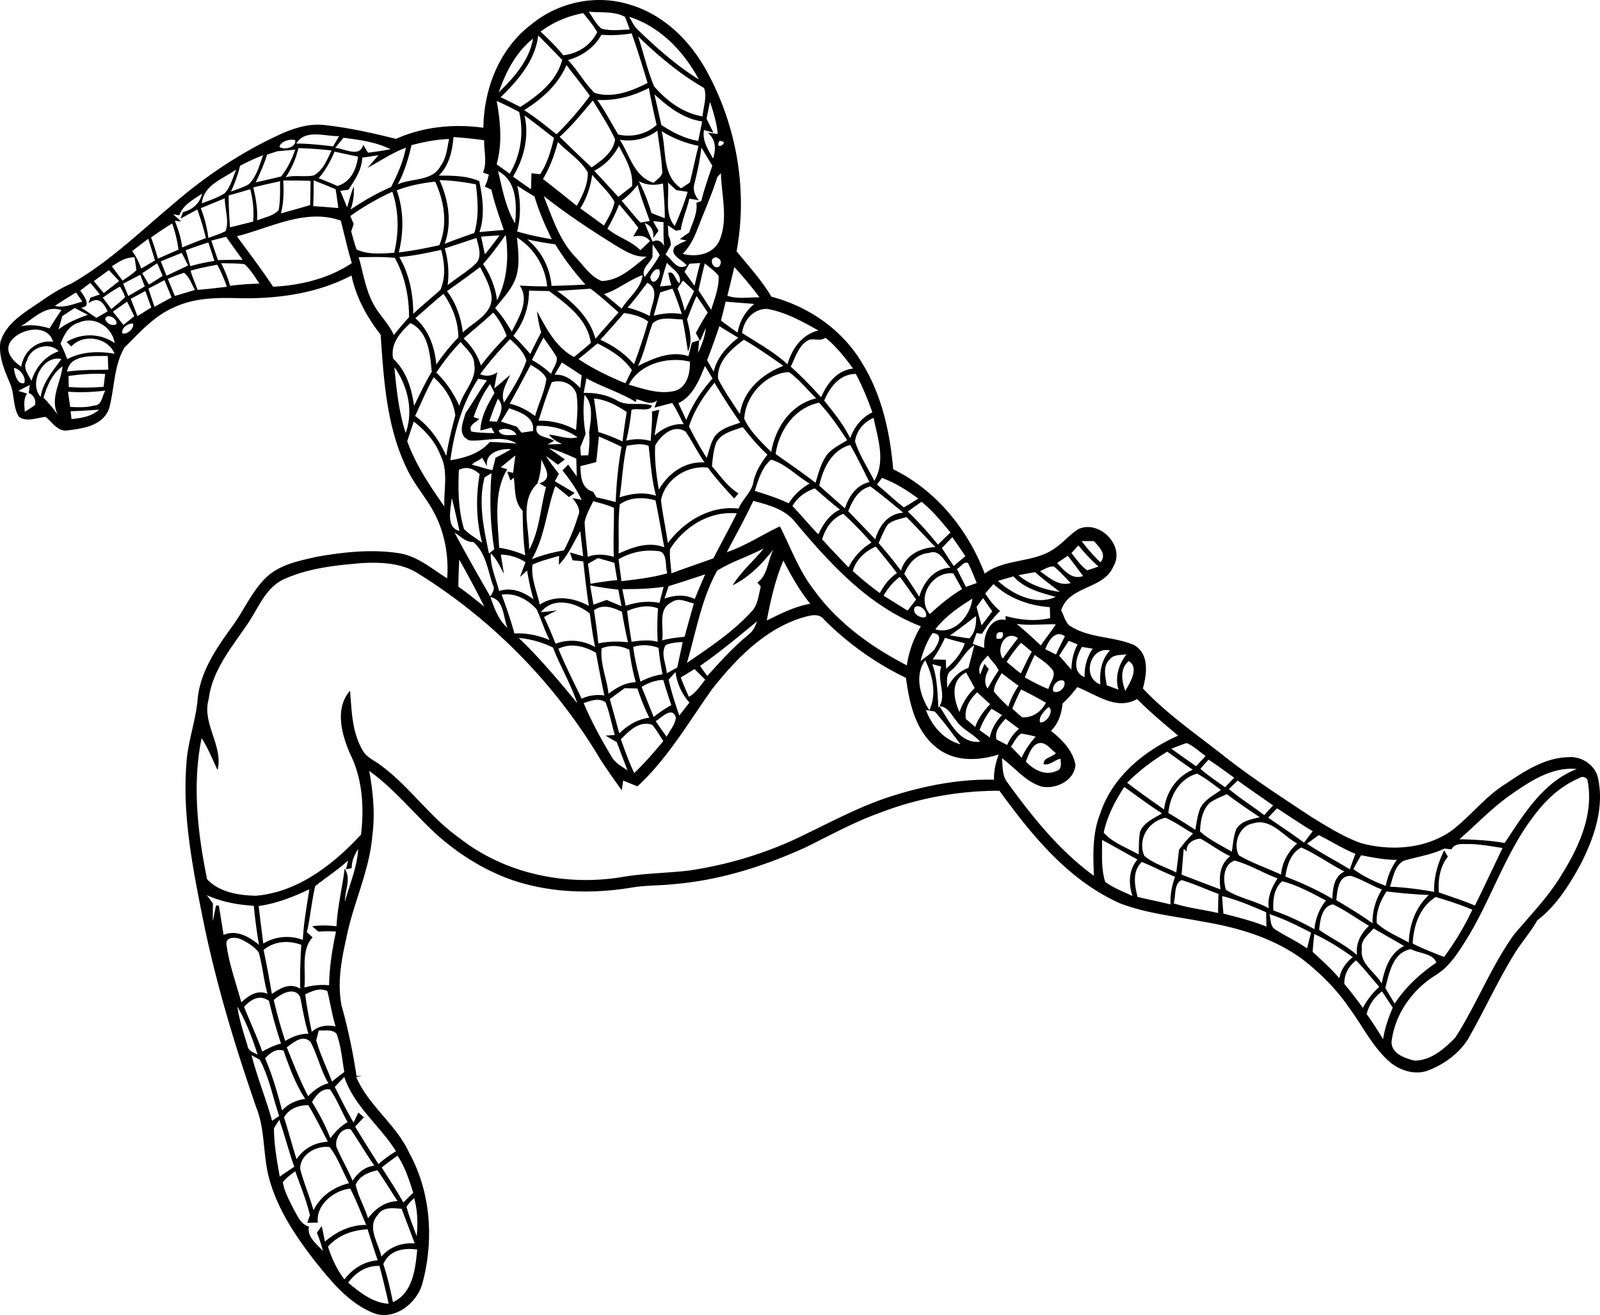 Free Printable Spiderman Coloring Pages For Kids | Projects To Try - Free Printable Spiderman Coloring Pages